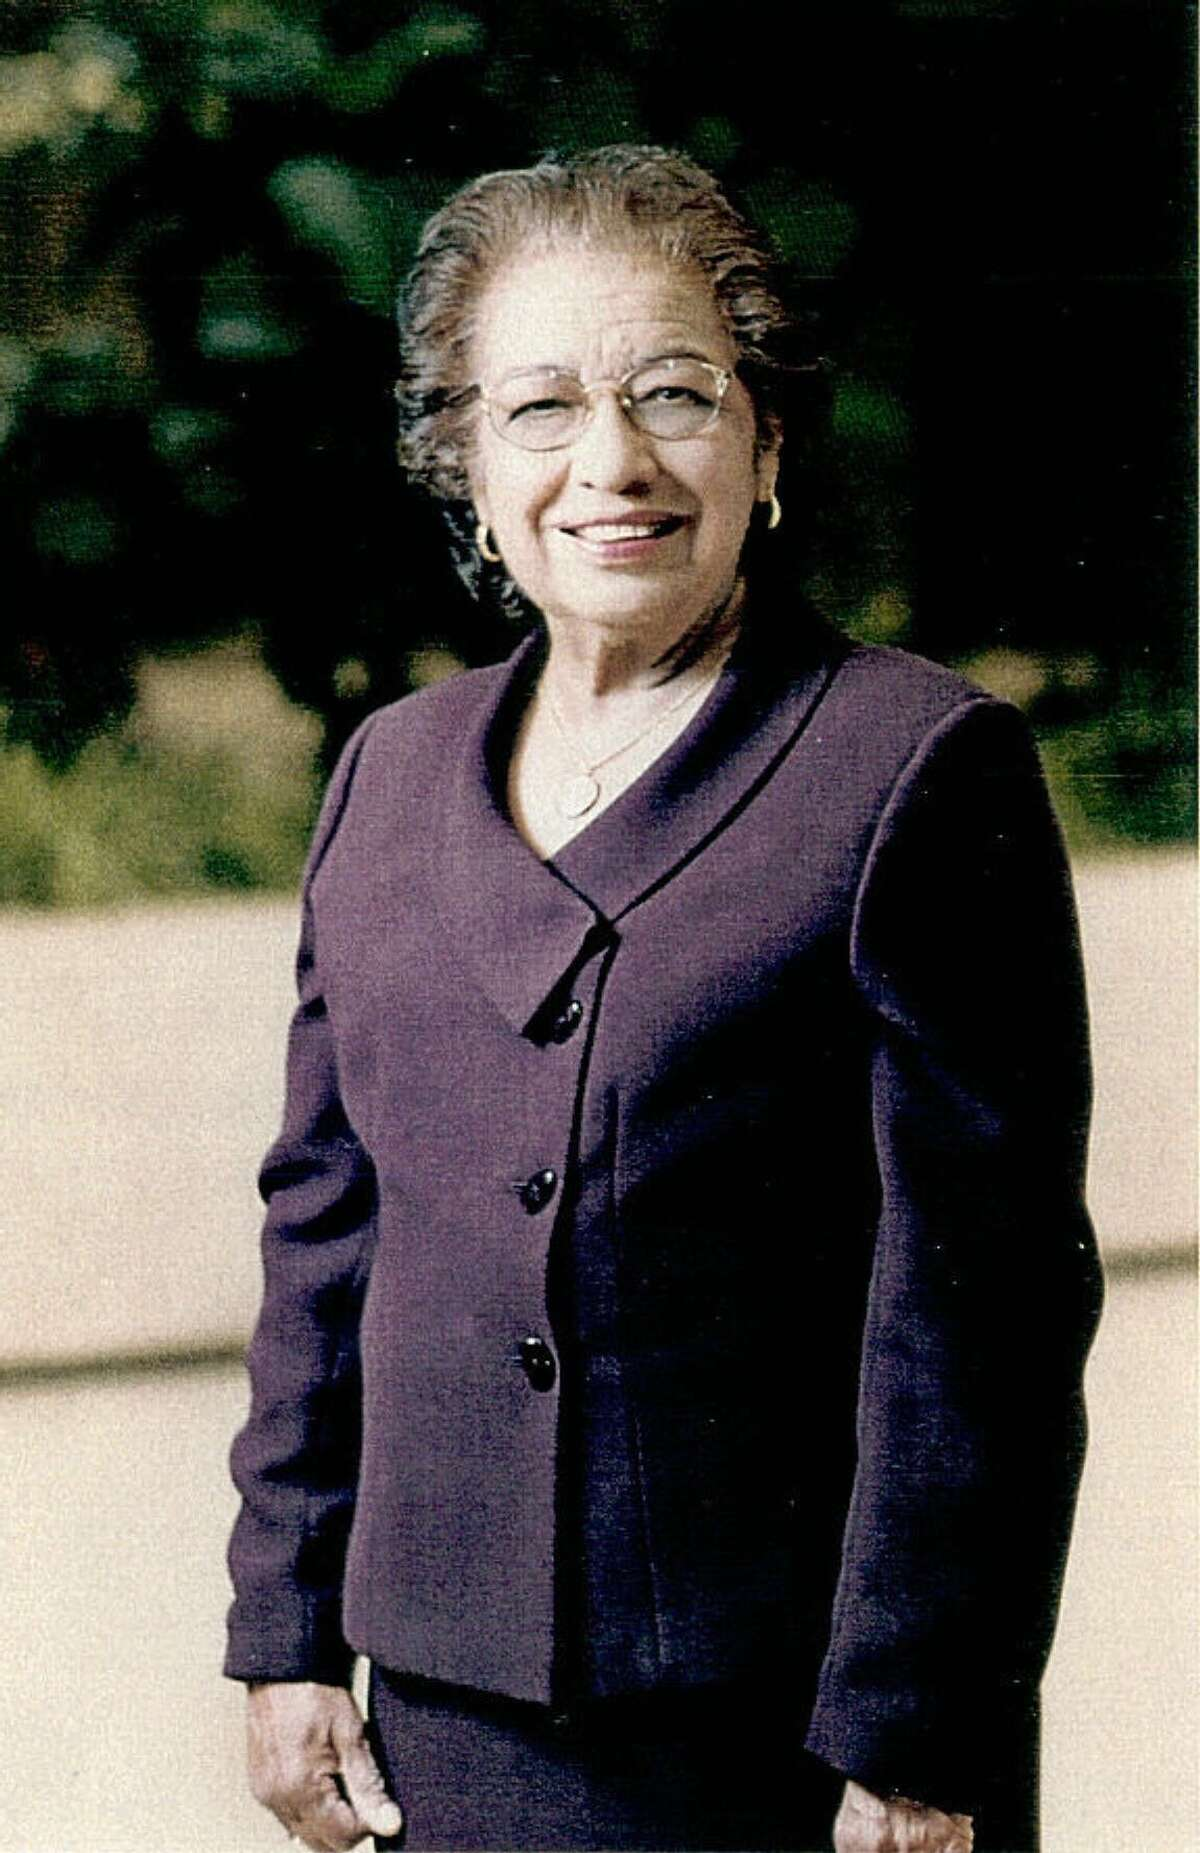 Olga Gallegos was the first Mexican American HISD board president.